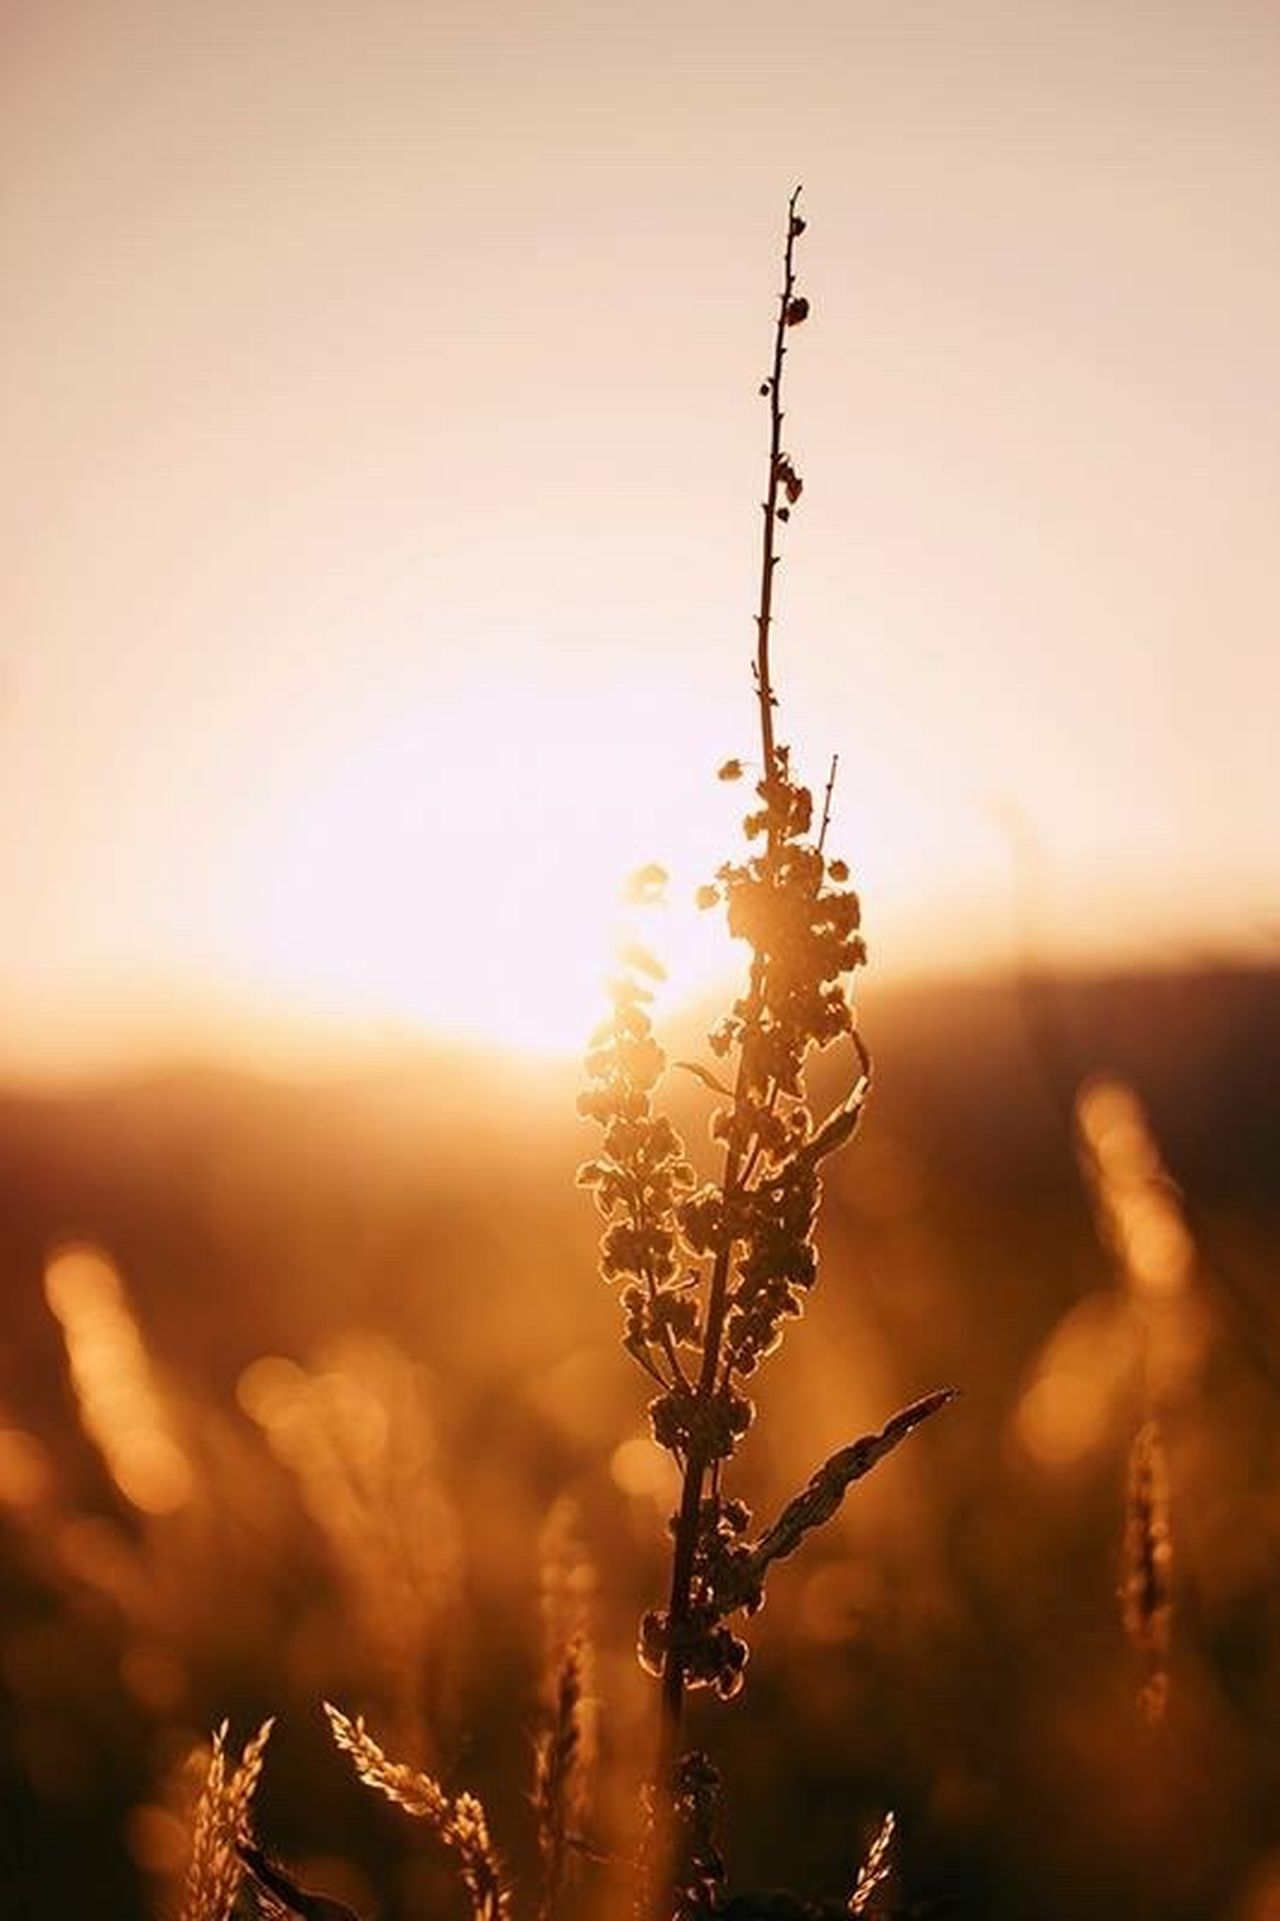 Sunset Nature Beauty In Nature Sun Agriculture Sunlight Beauty Close-up Landscape Plant Outdoors Idyllic Summer No People Cereal Plant Sky Leaf Autumn Scenics